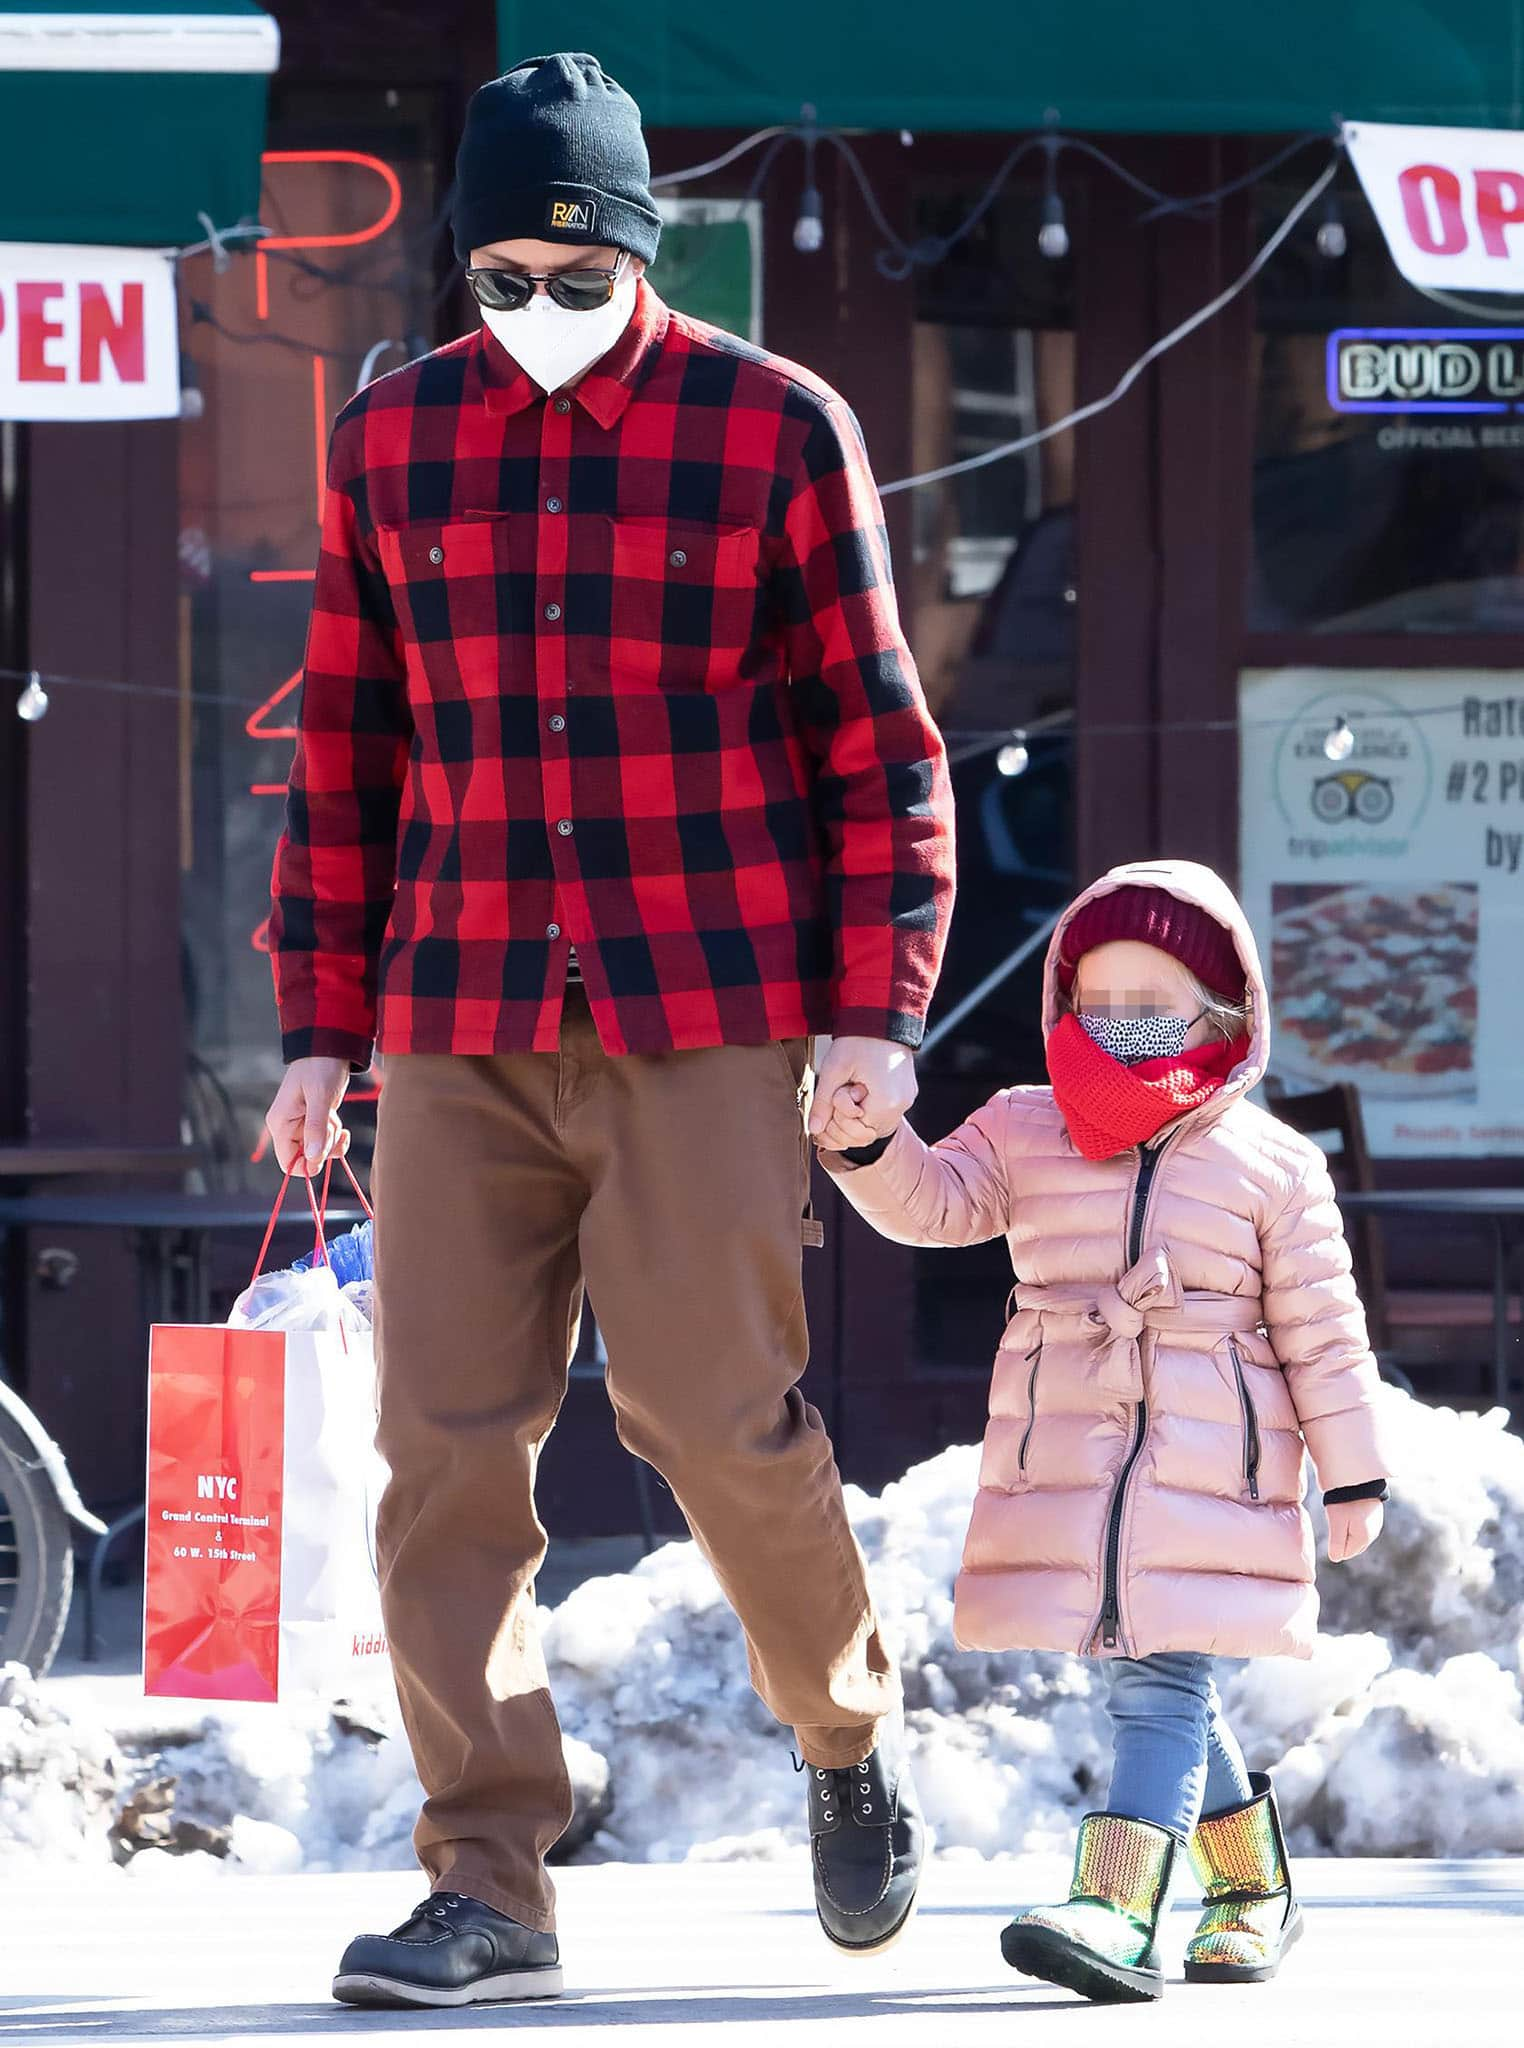 Bradley Cooper bonds with his daughter in a checkered shirt on February 10, 2021